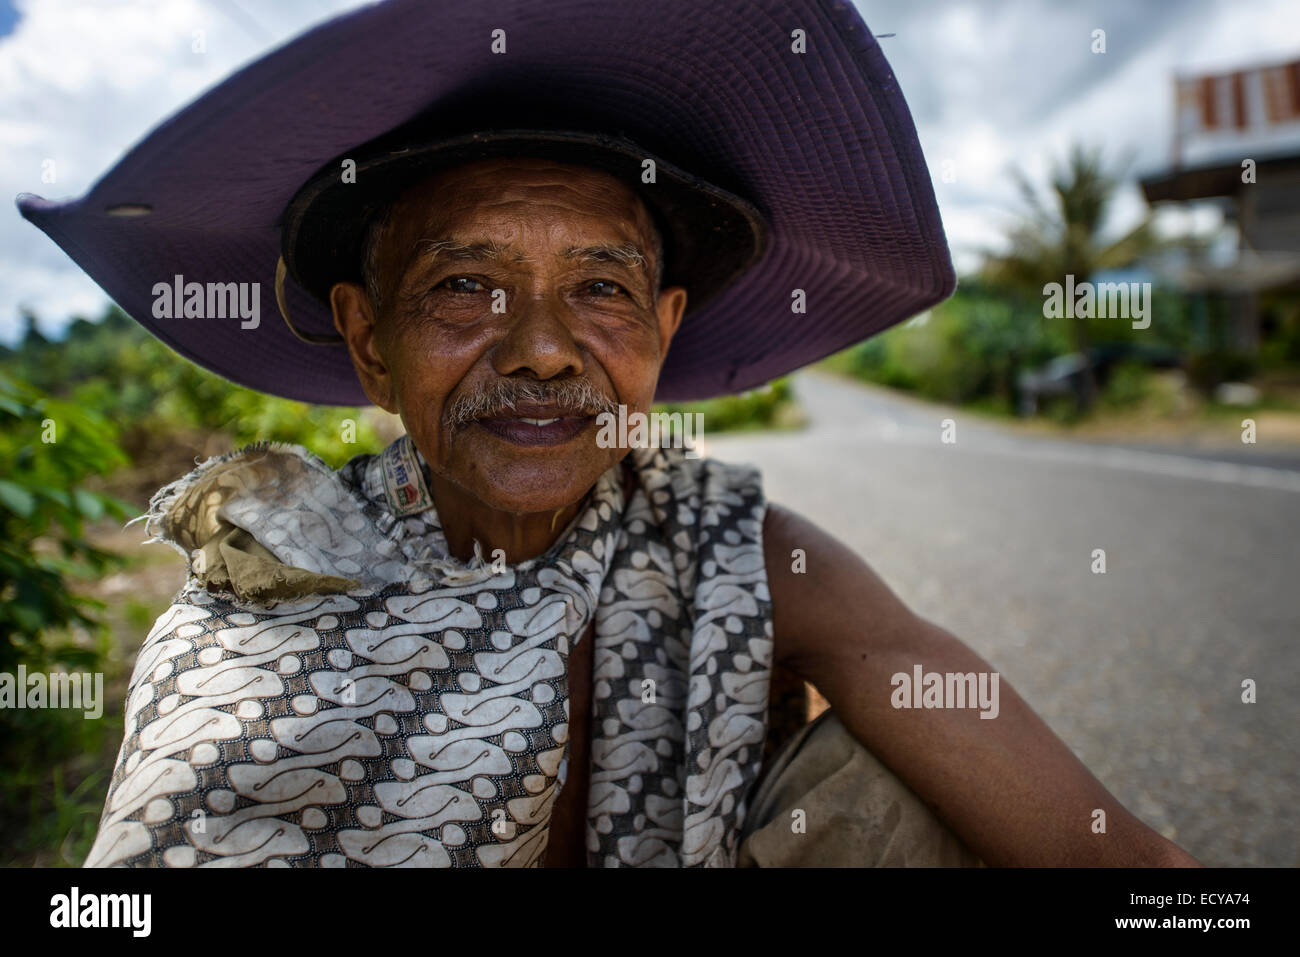 Cocoa beans collector, Sulawesi, Indonesia - Stock Image